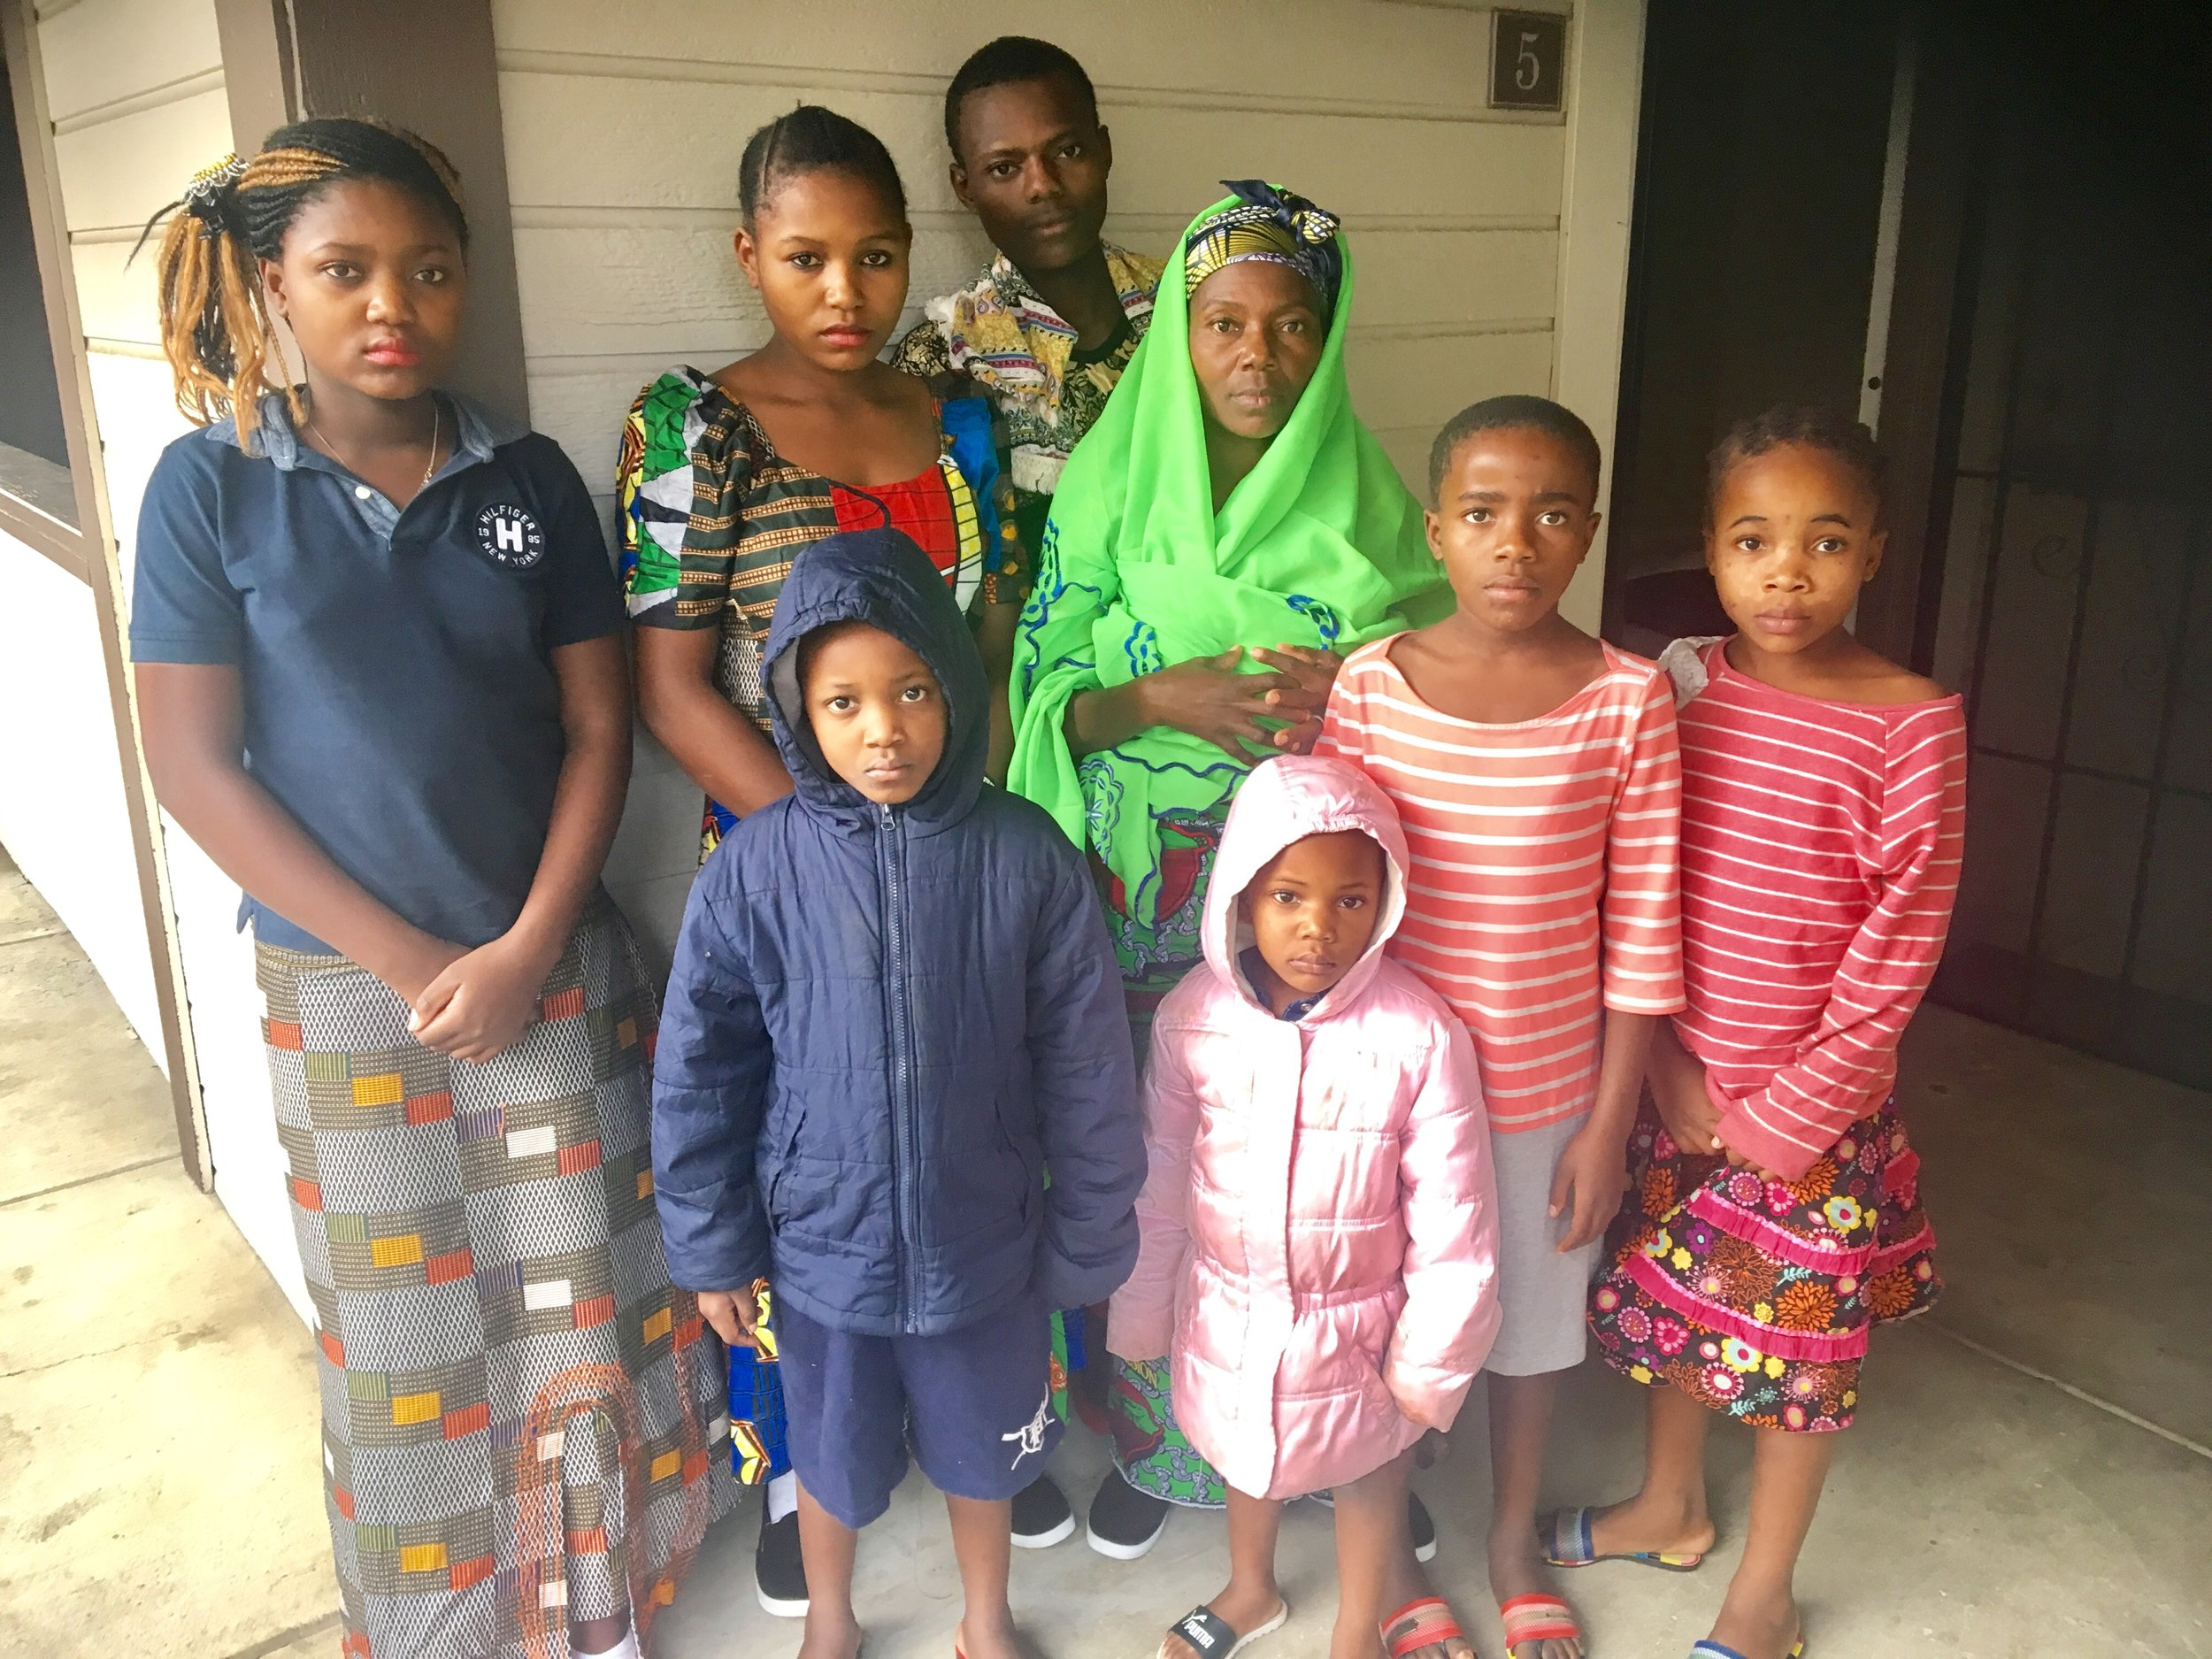 Assisted over 20 refugee families with housing needs -